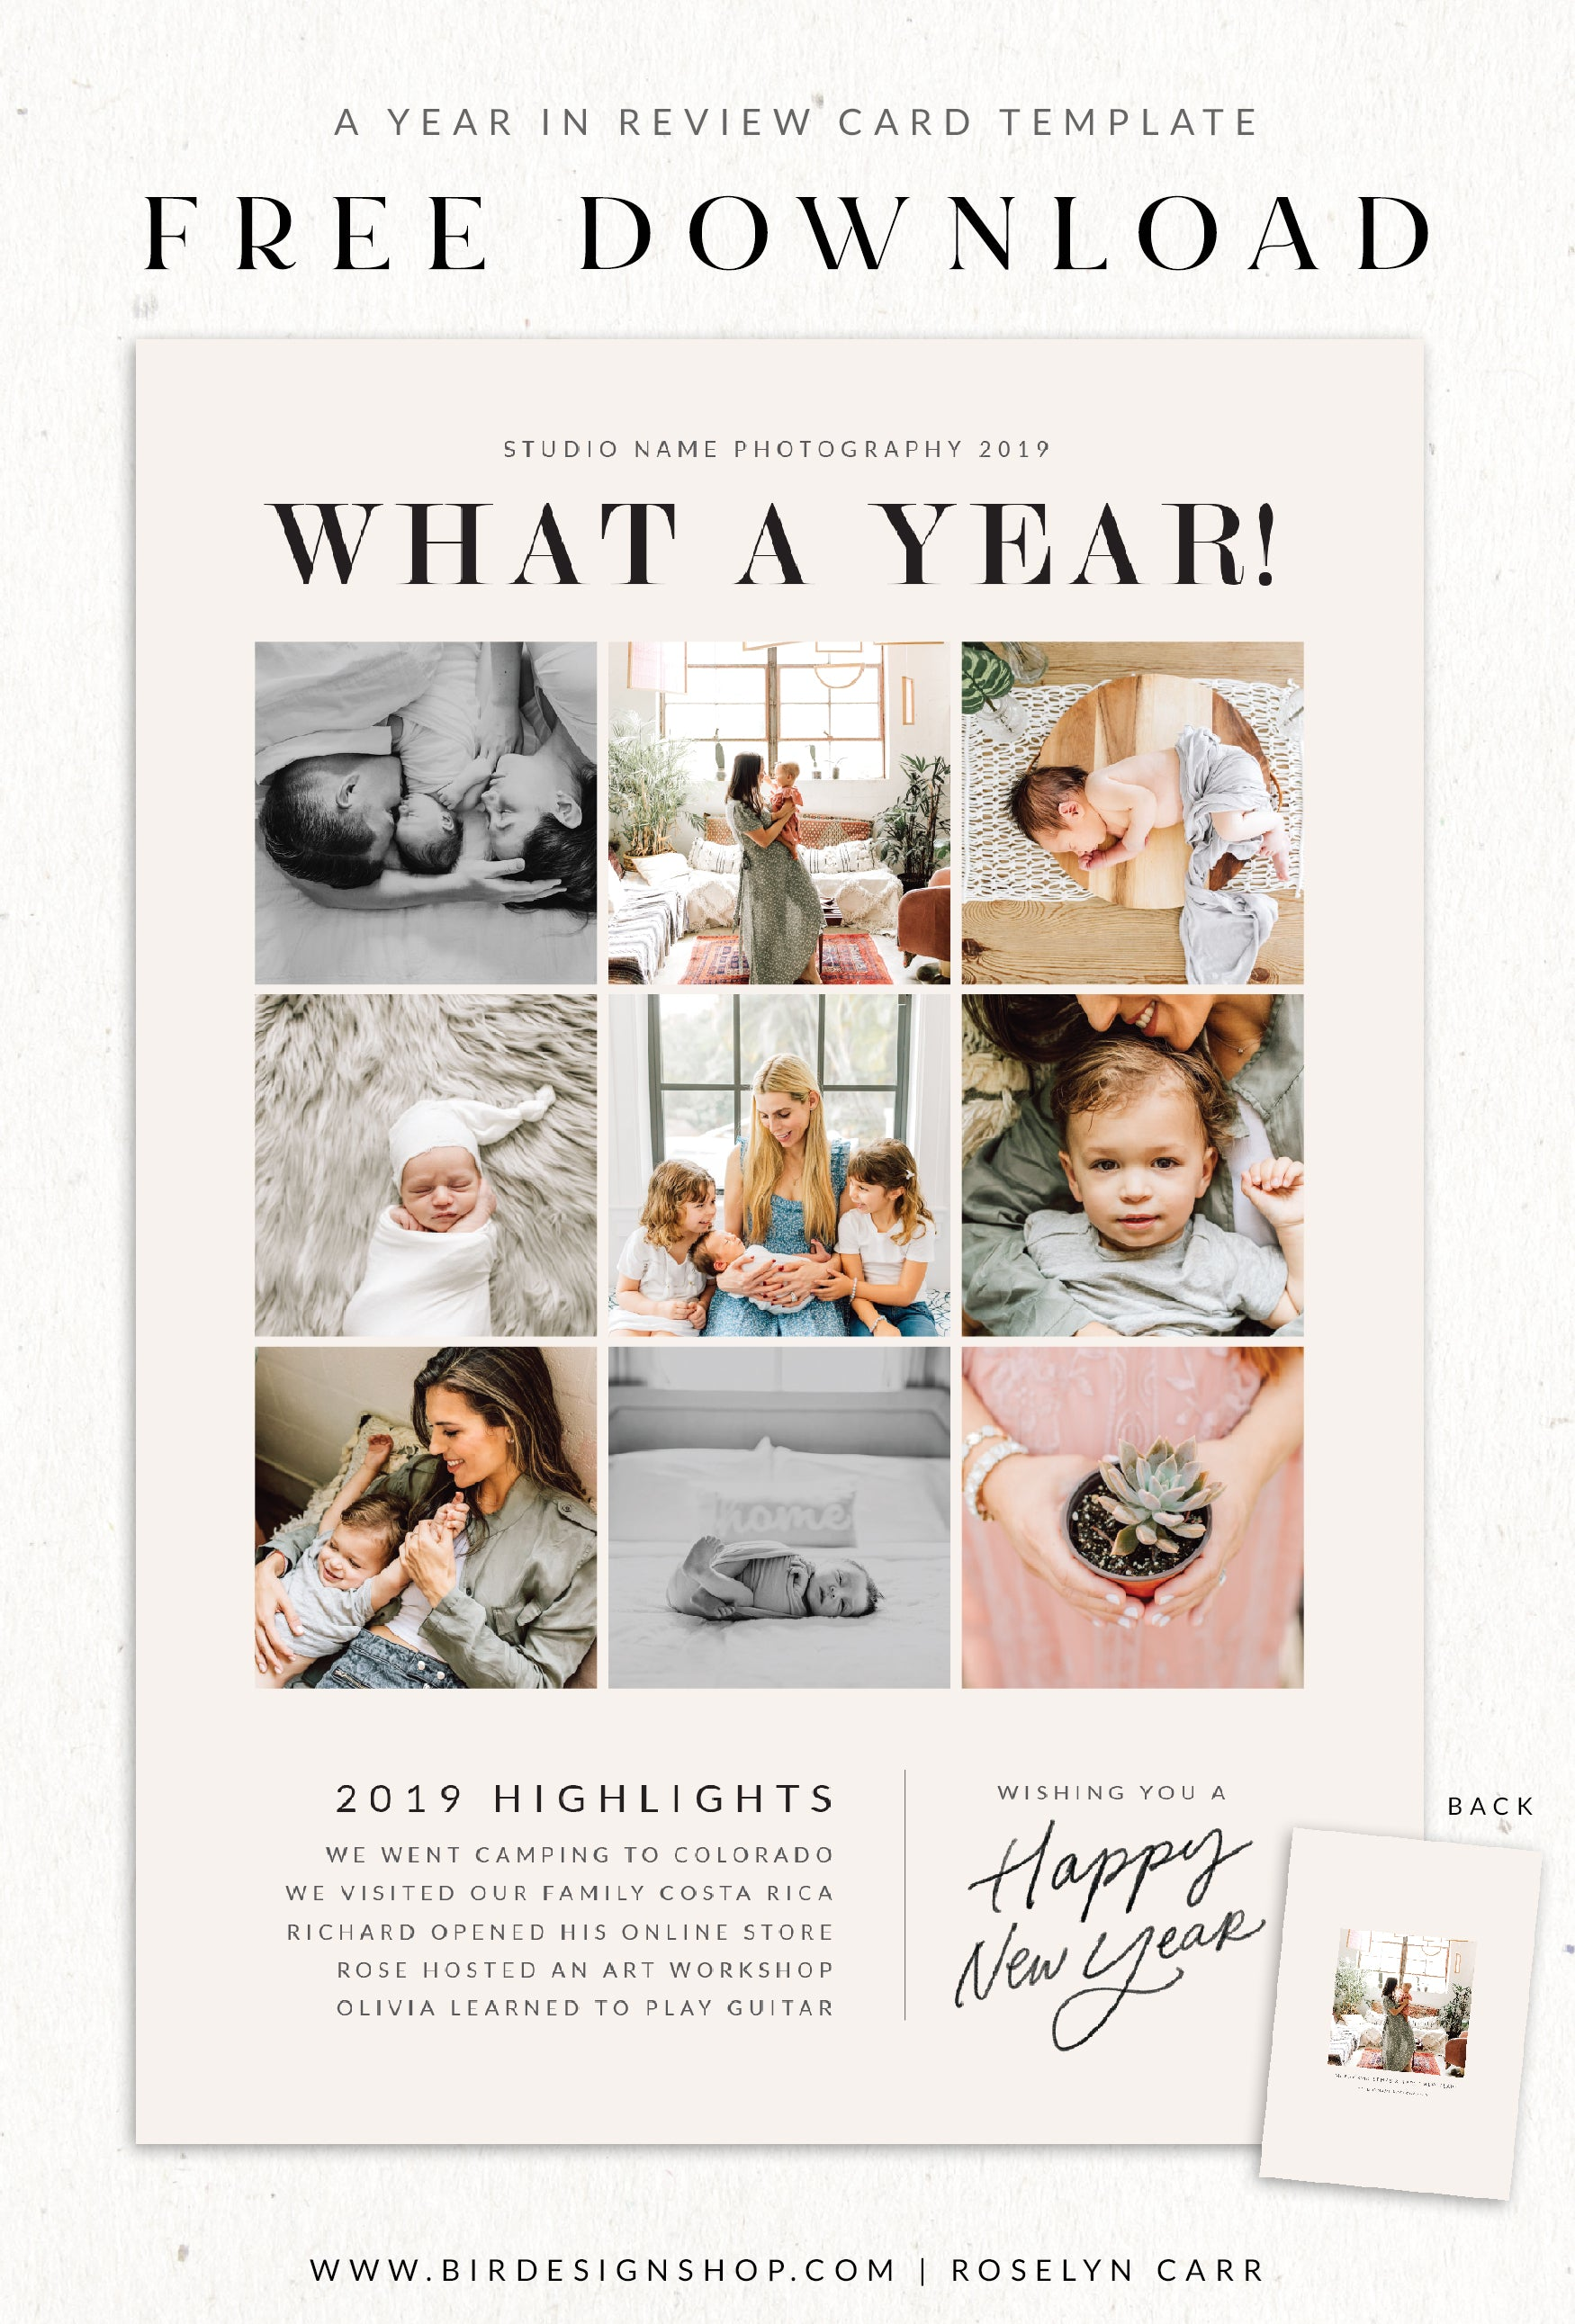 Free a year in review card template